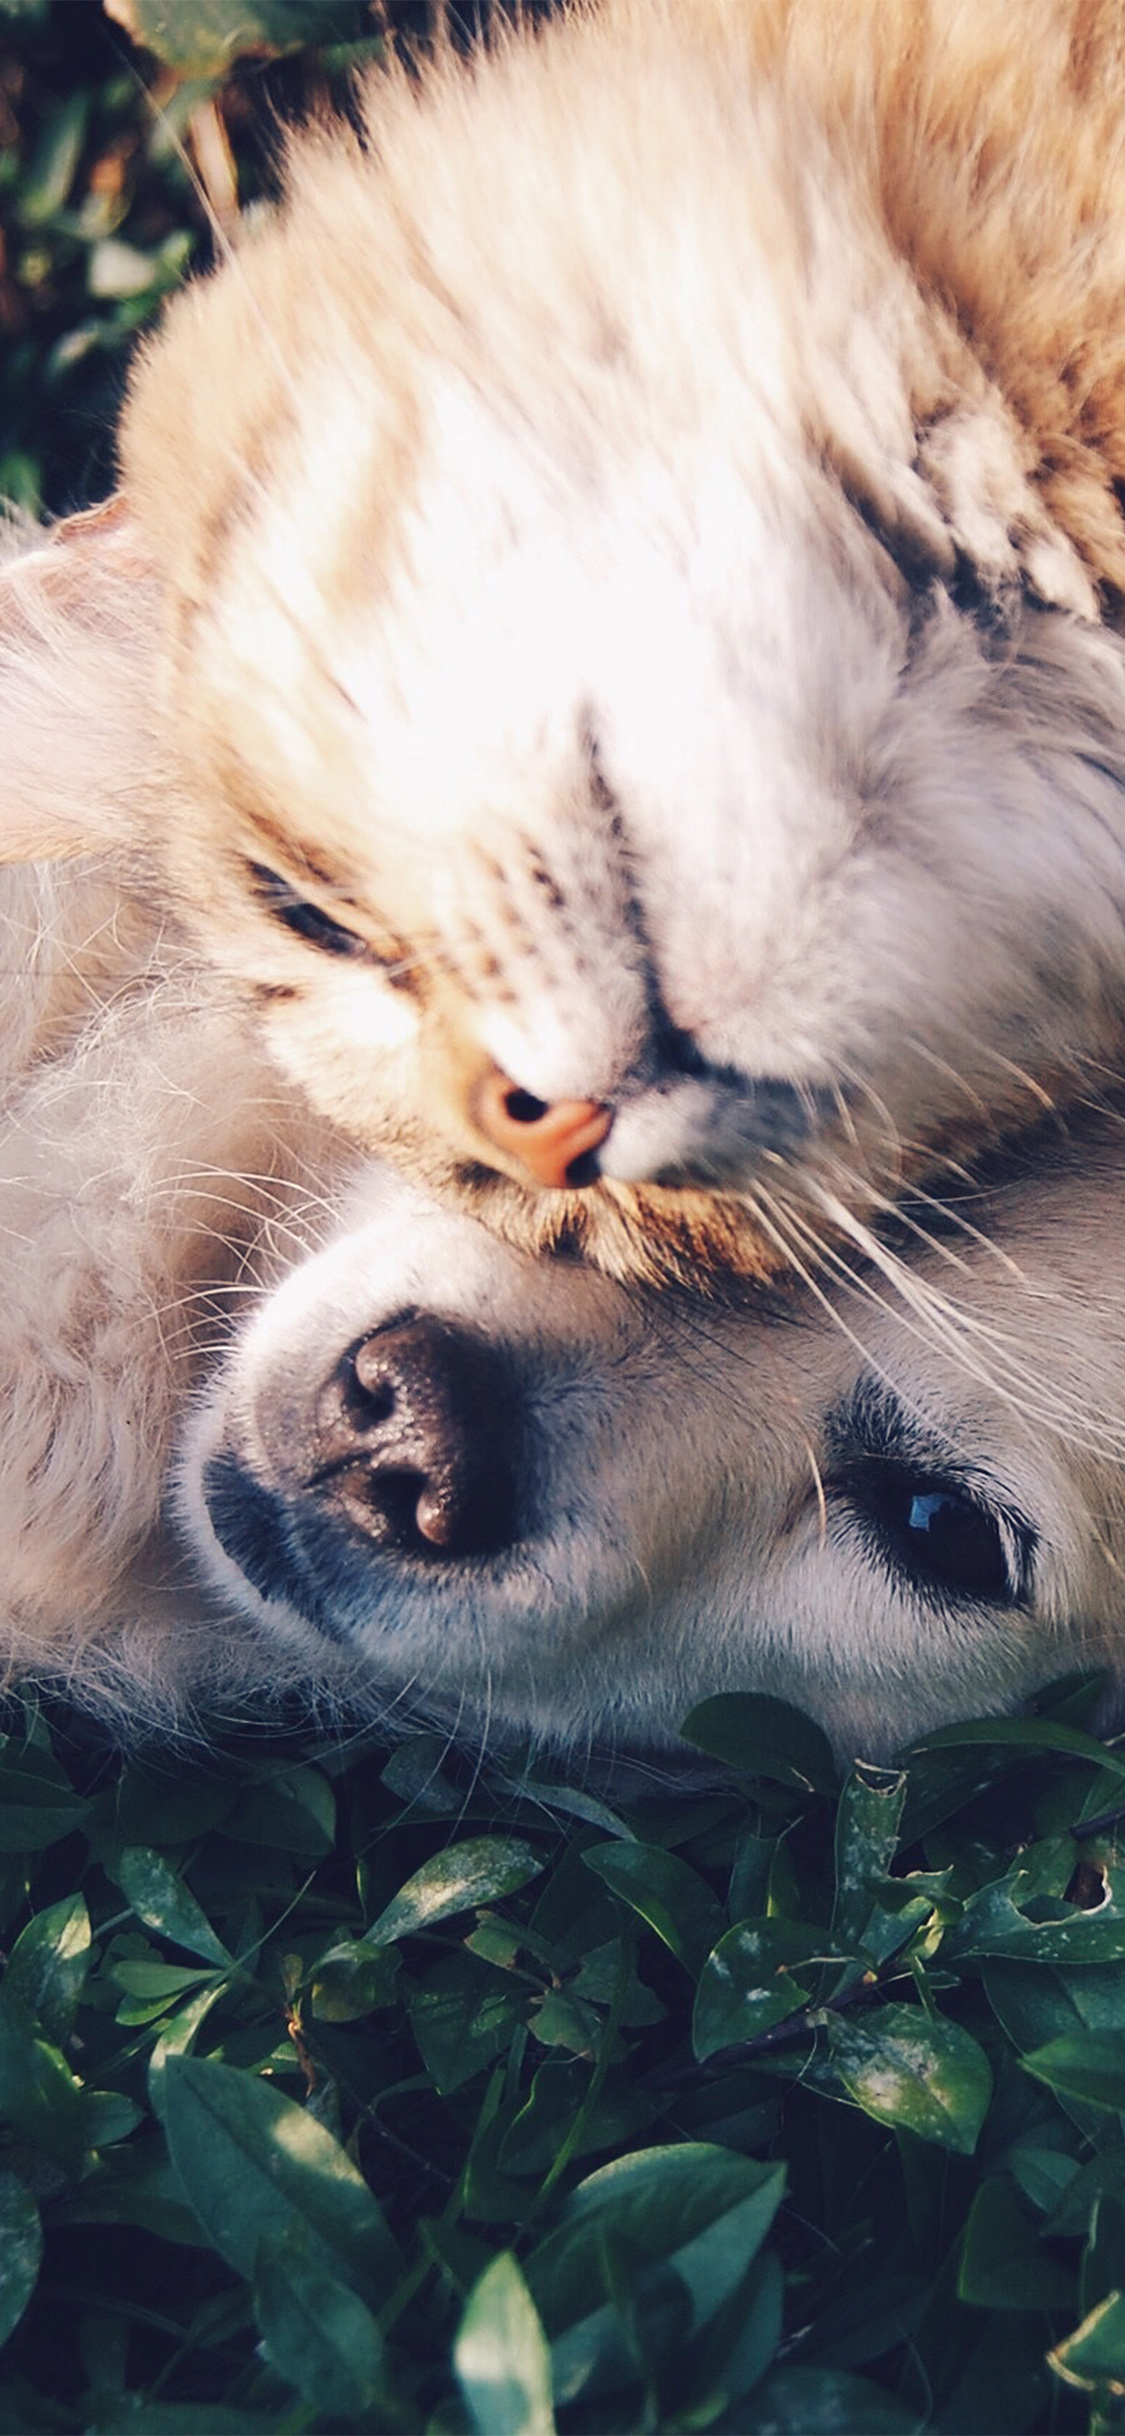 Nf34 Cat And Dog Animal Love Nature Pure Wallpaper